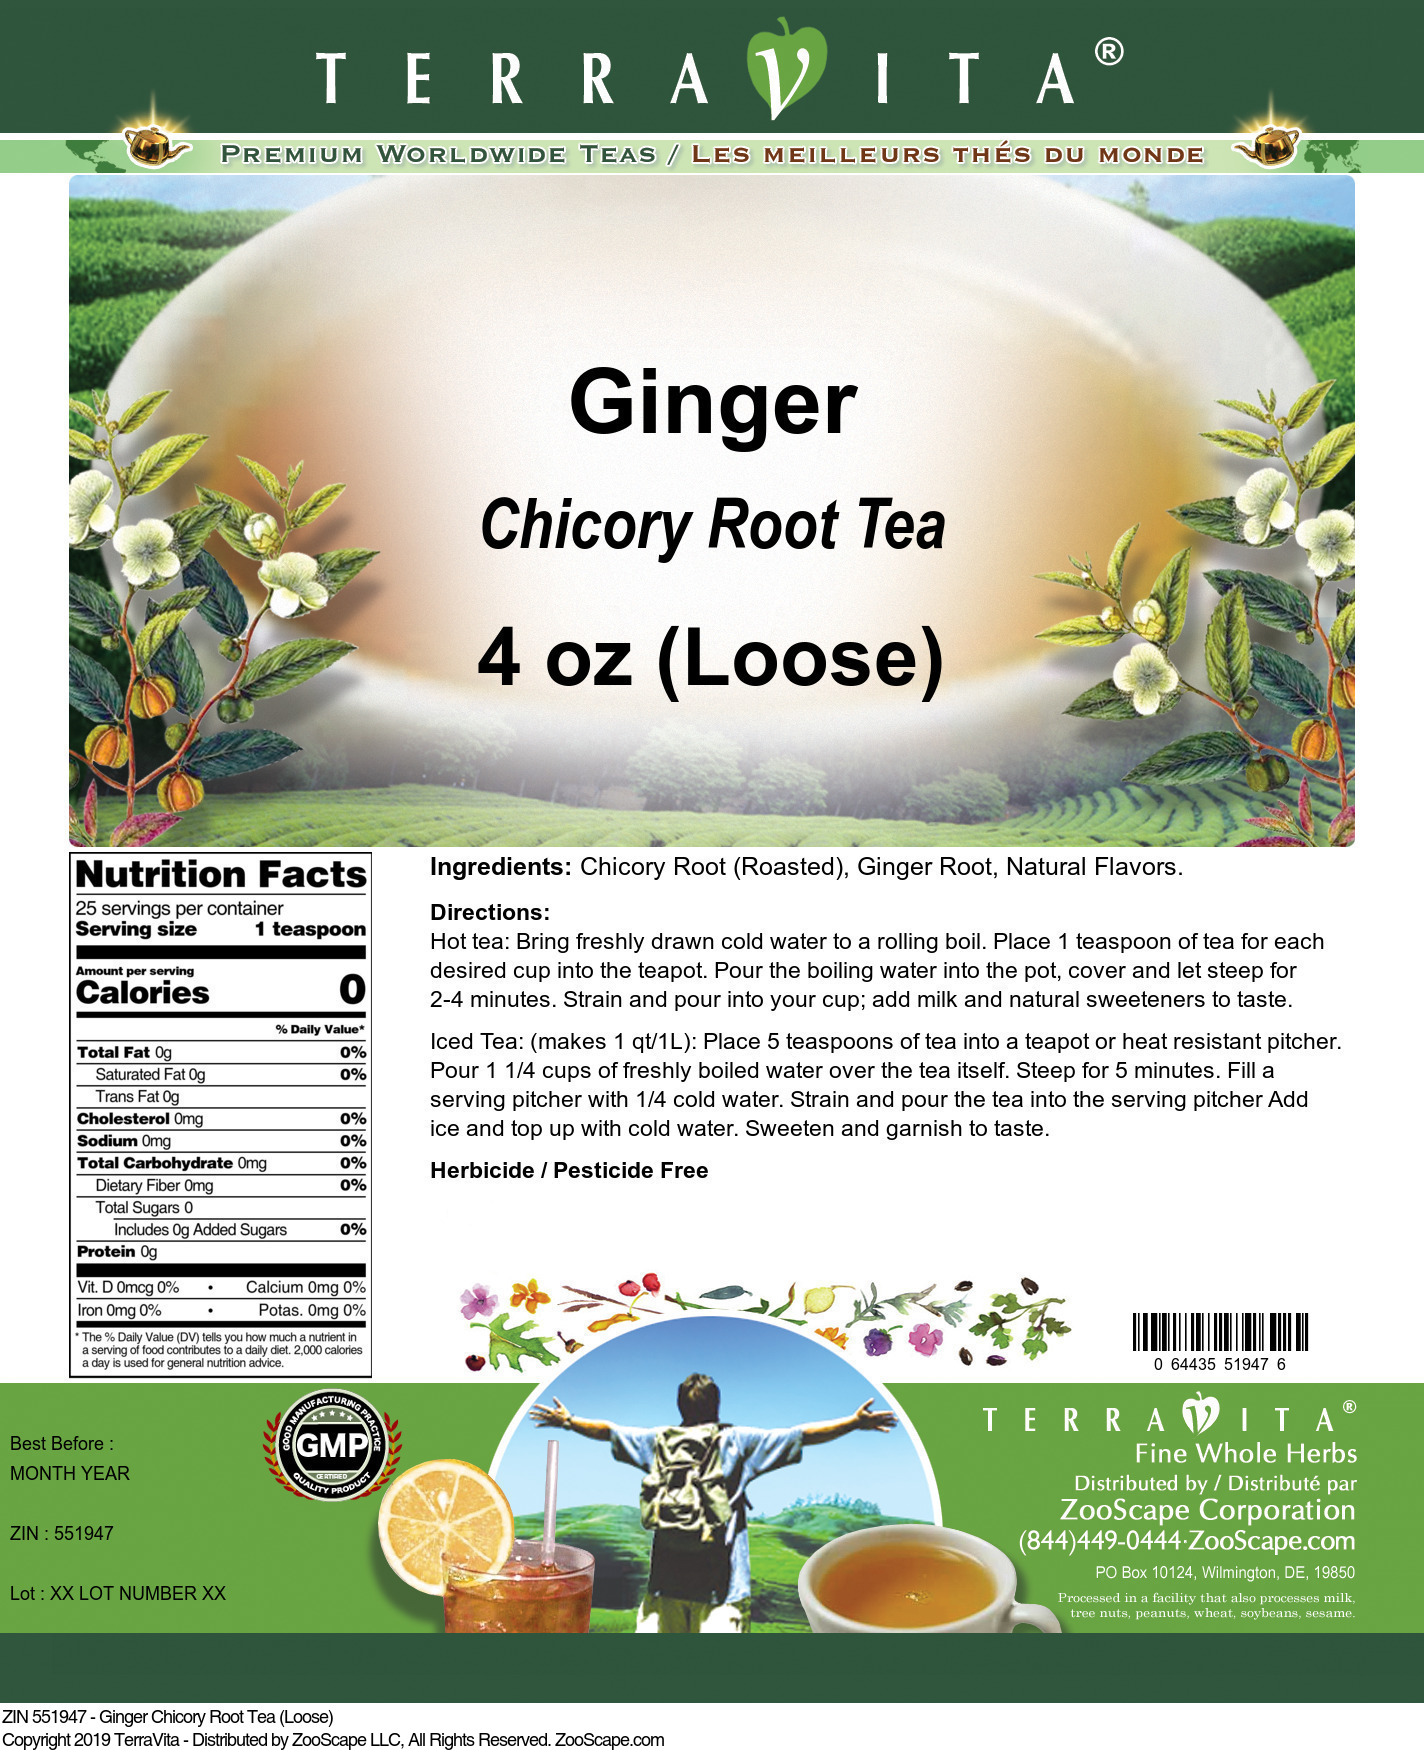 Ginger Chicory Root Tea (Loose)